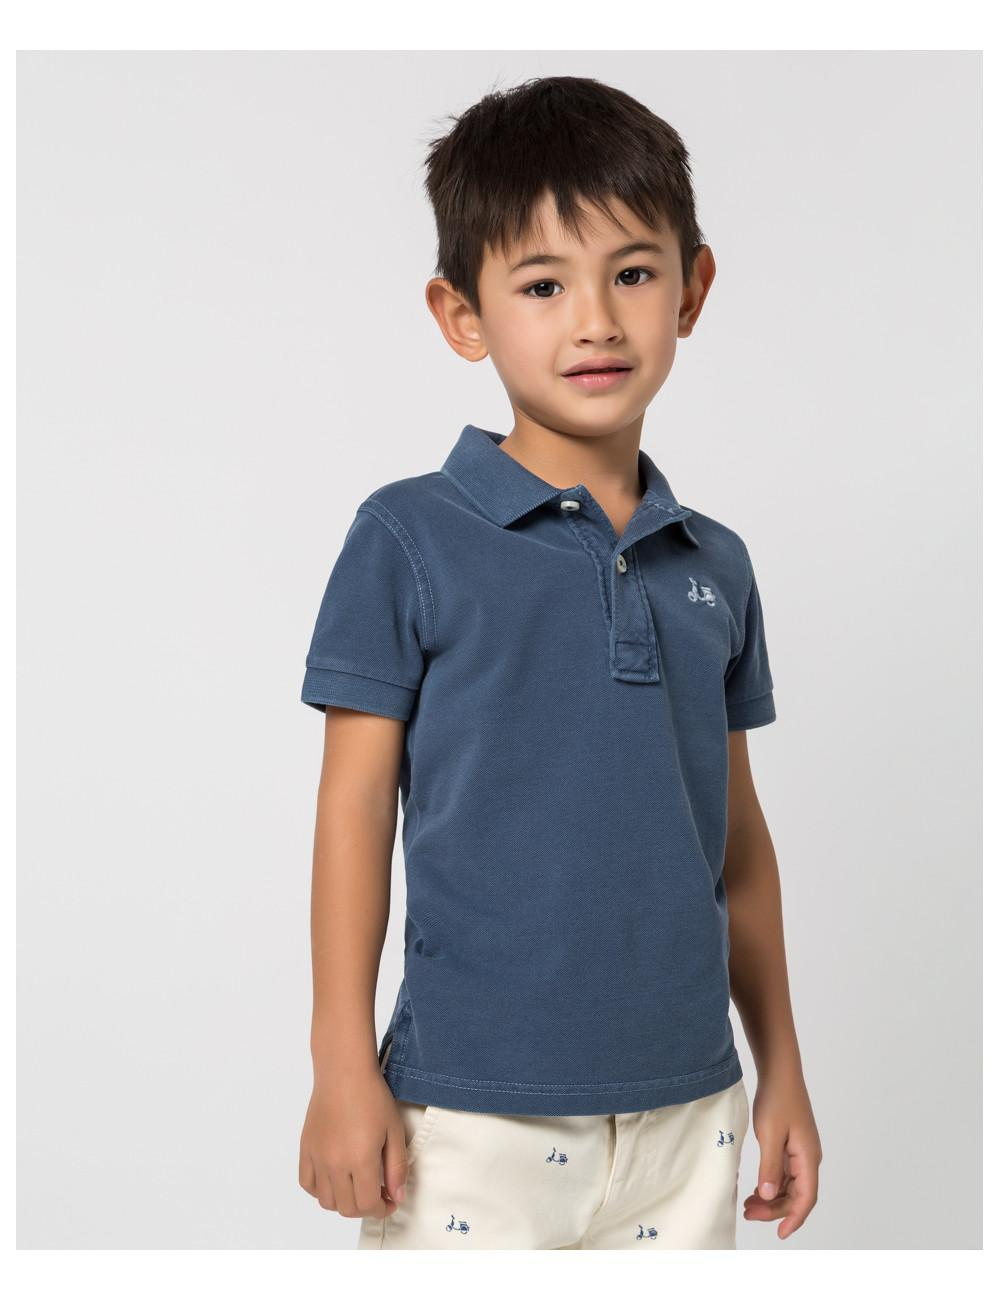 Polo niño tinte prenda denim